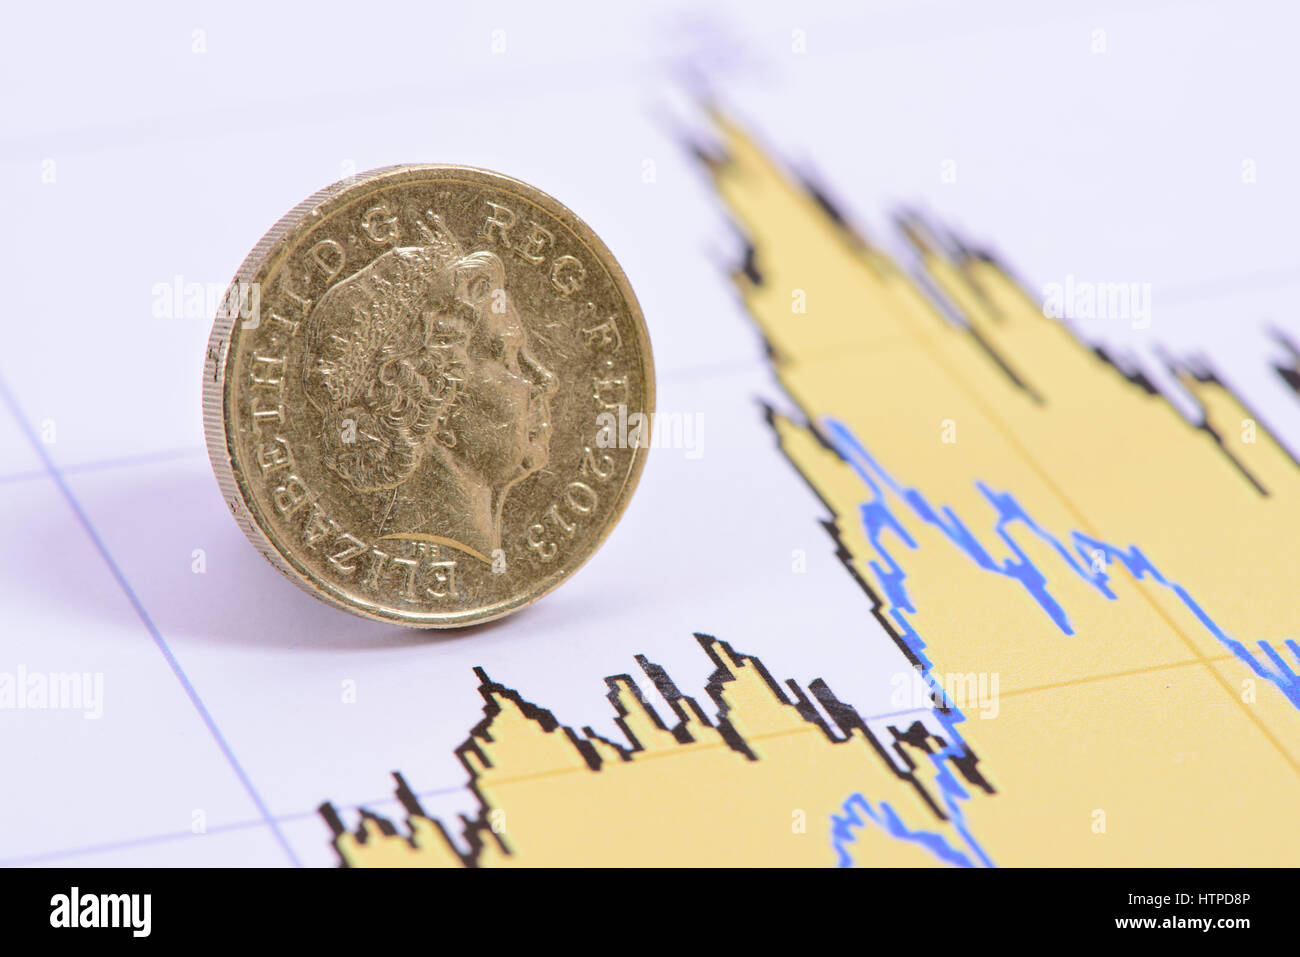 Pound coin of England currency laying in chart of exchange market - Stock Image